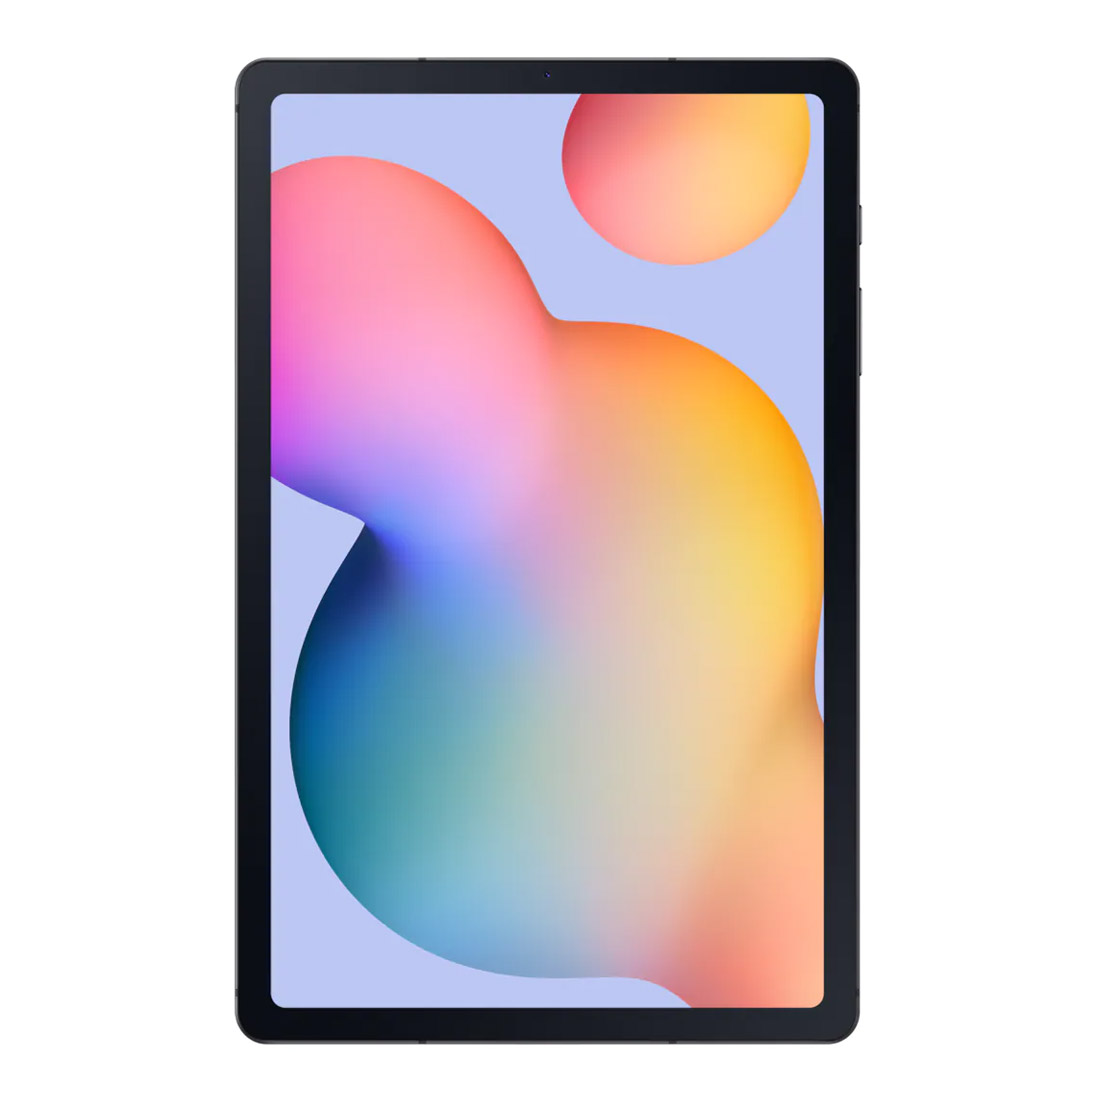 Samsung Galaxy Tab S6 Lite (64GB, WiFi + 4G, P615) - Oxford Grey